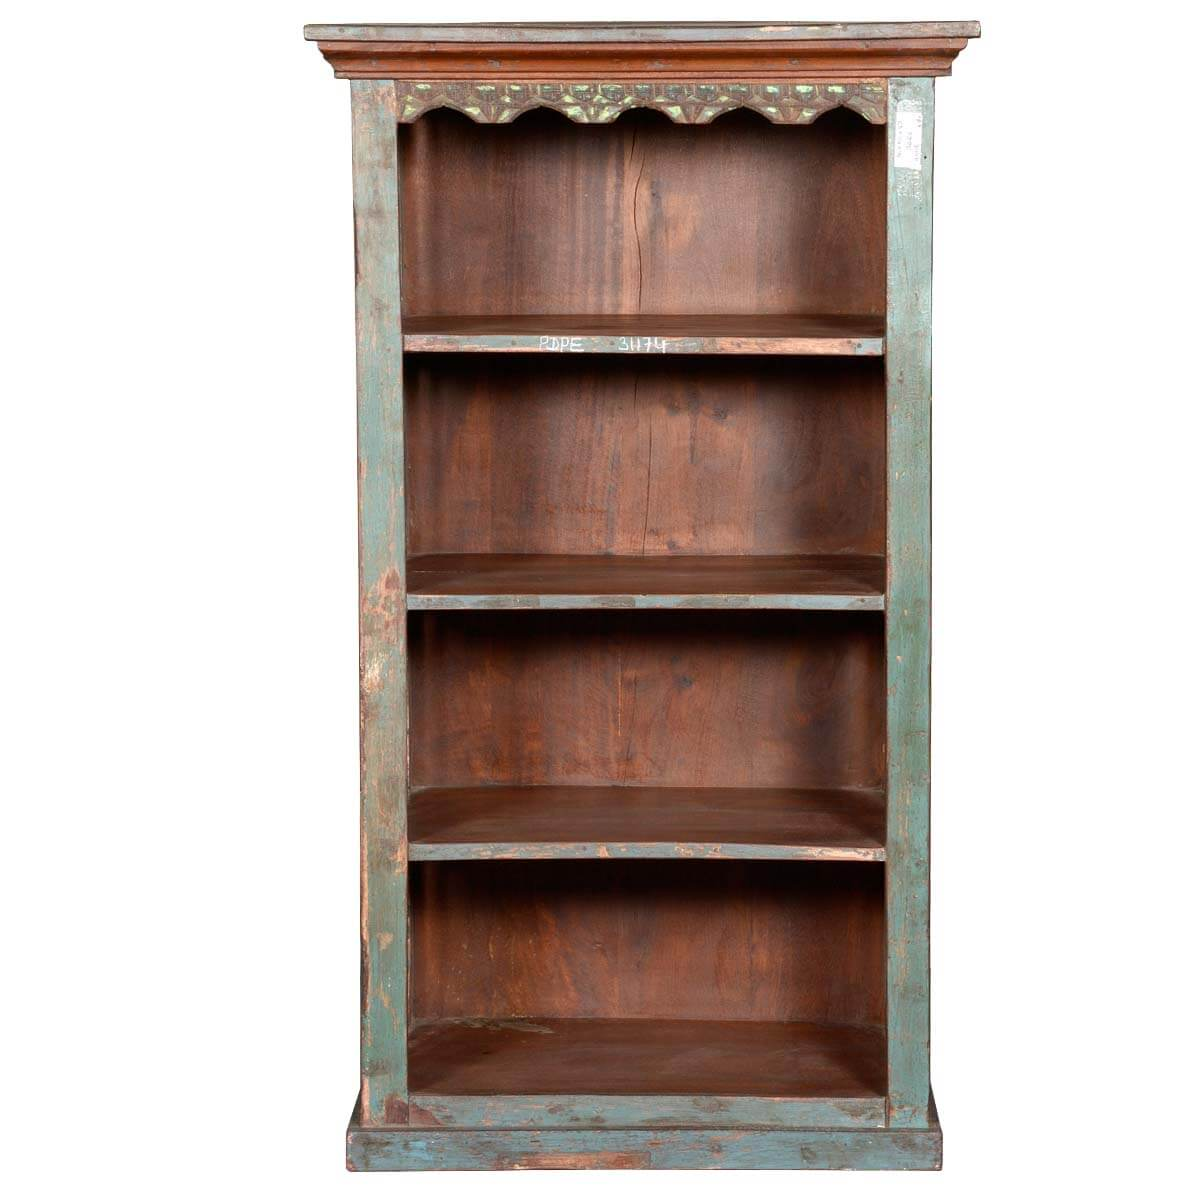 Rustic jail bar reclaimed wood quot tall open bookcase curio